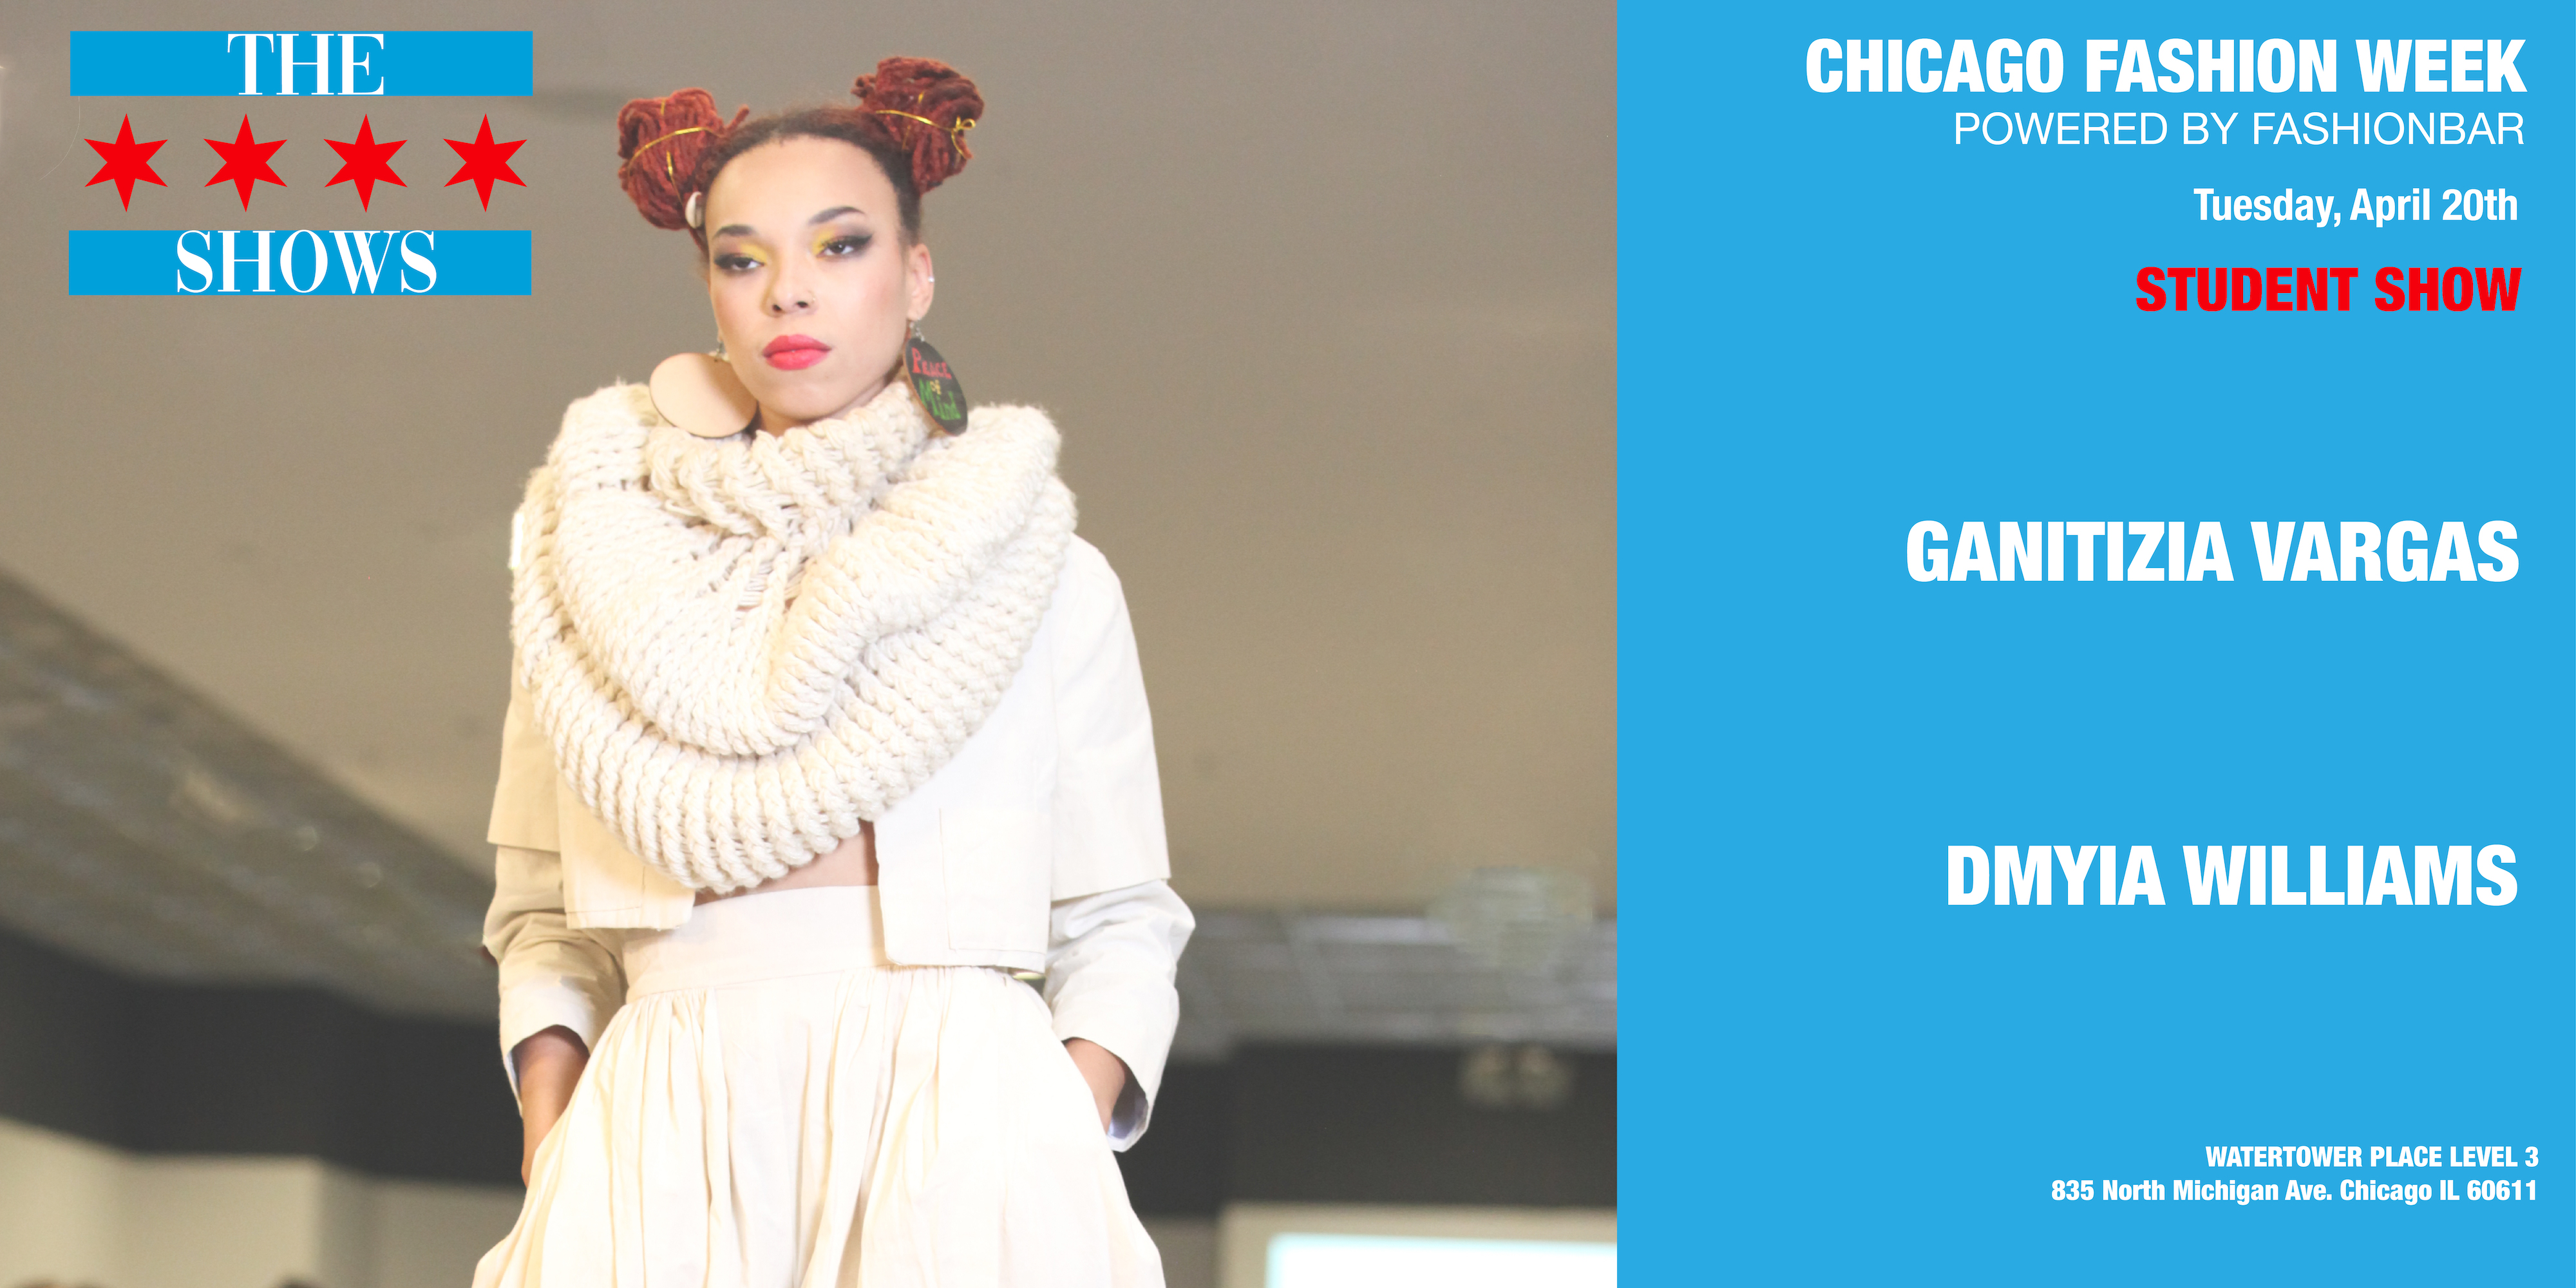 Chicago Fashion Week Powered by FashionBar:  THE SHOWS APRIL 2021